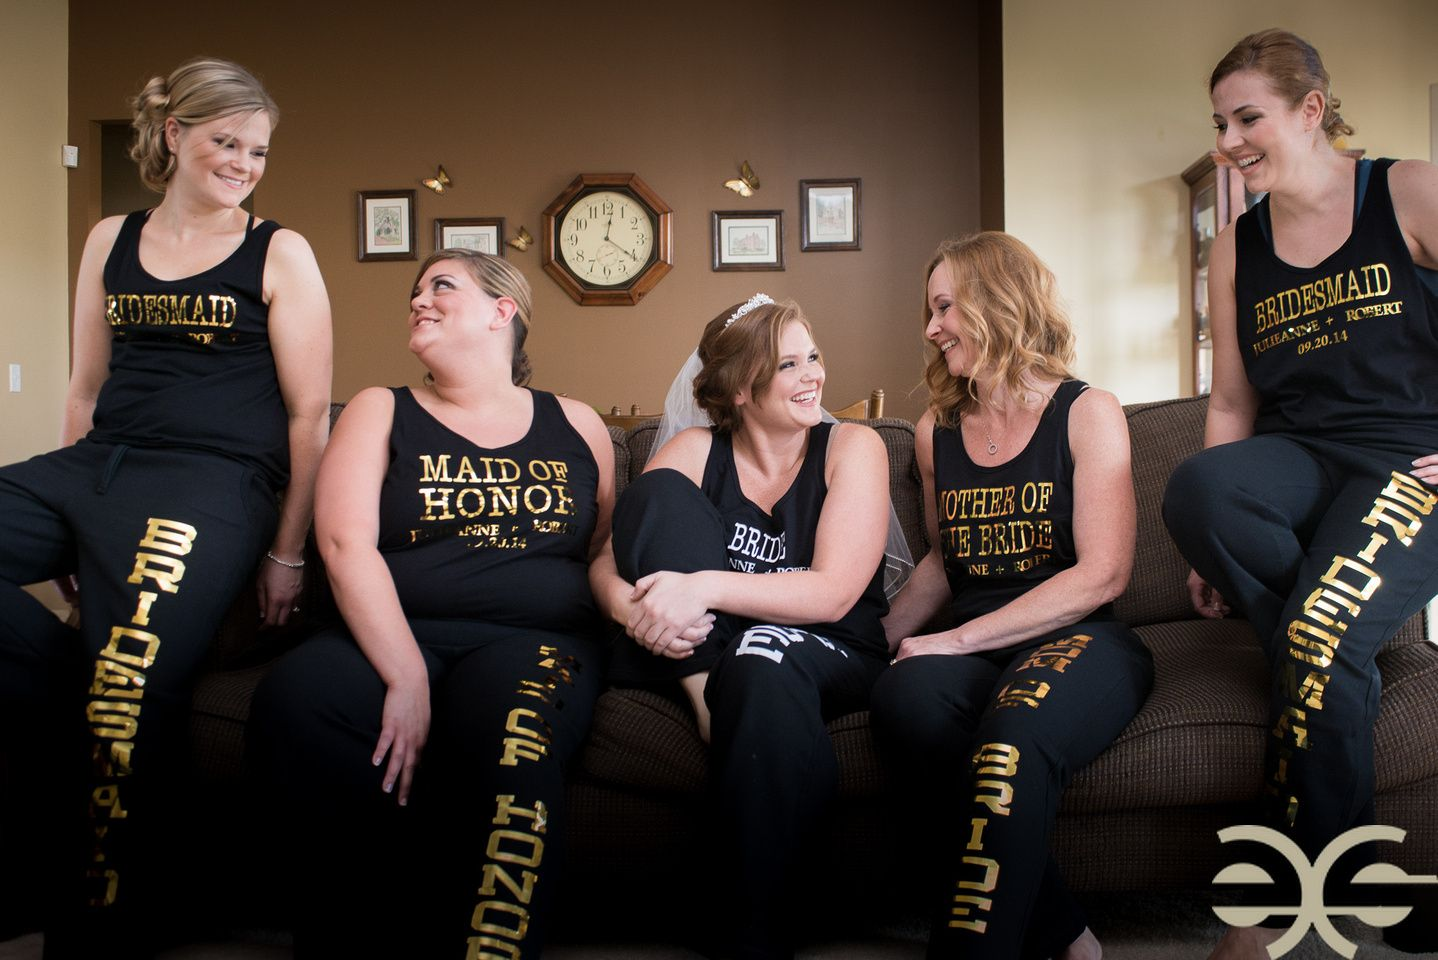 Bride and bridesmaids hanging out in personalized sweat suits ...